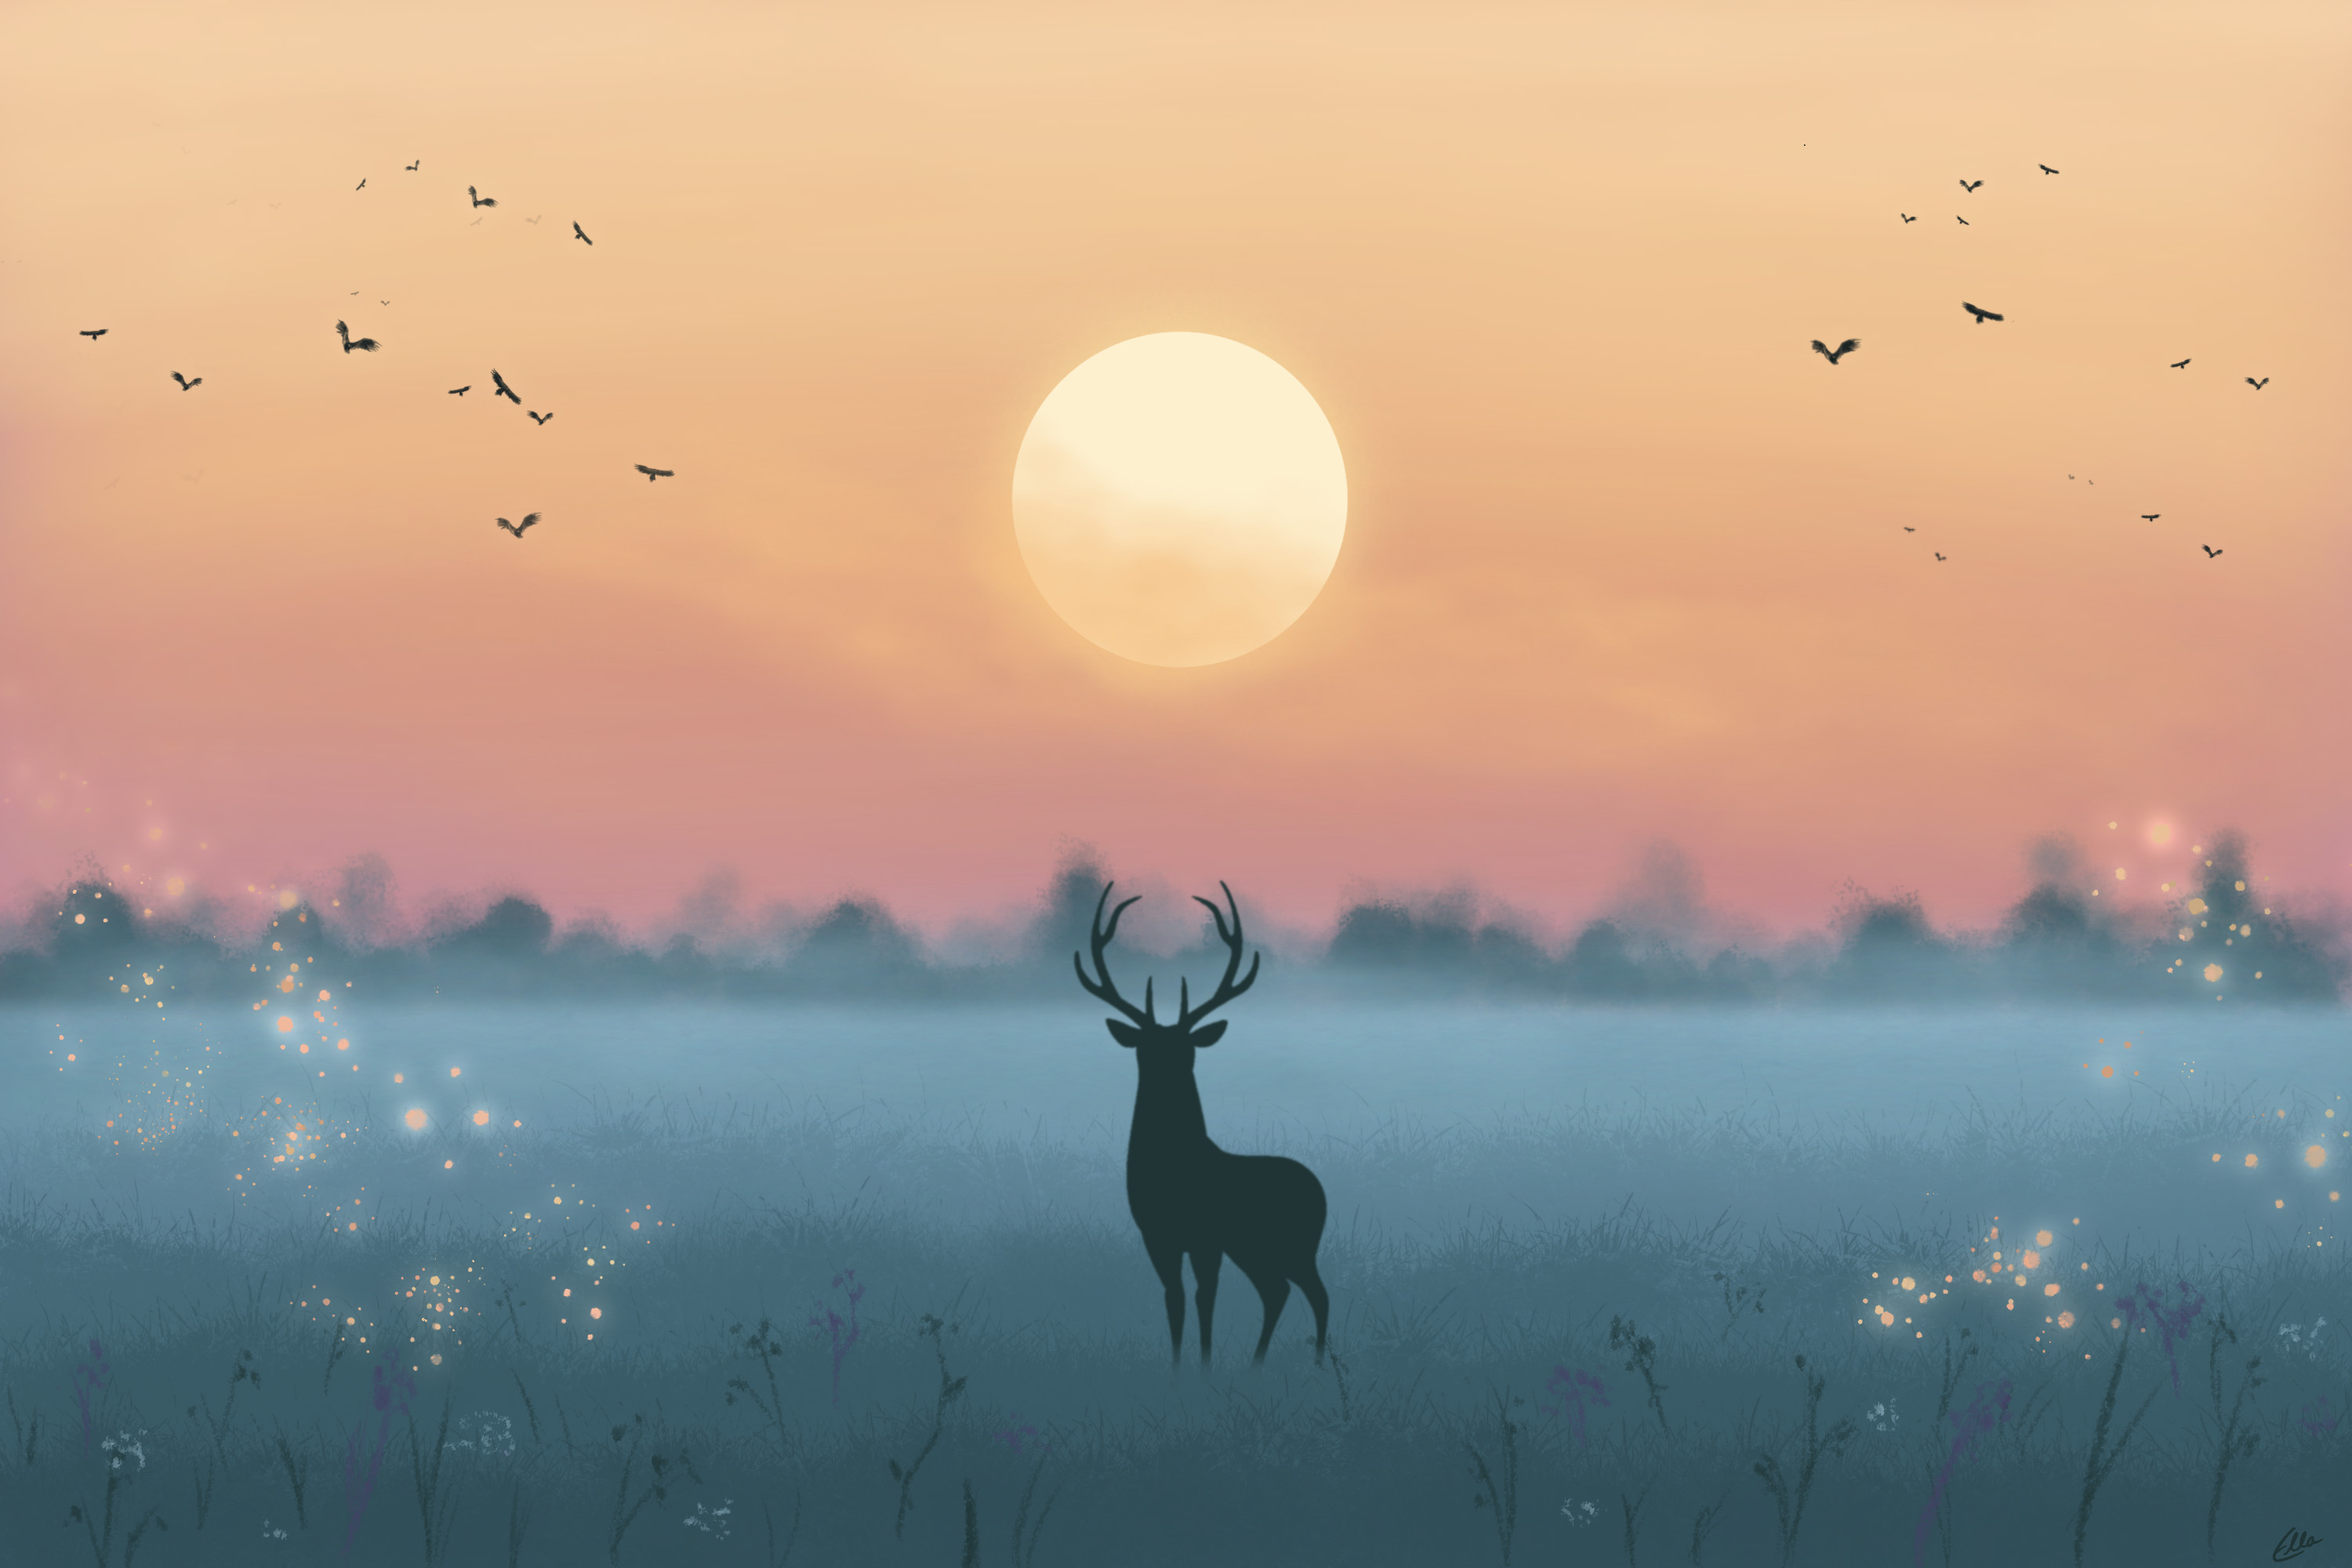 128857 download wallpaper Deer, Silhouette, Moon, Night, Art screensavers and pictures for free